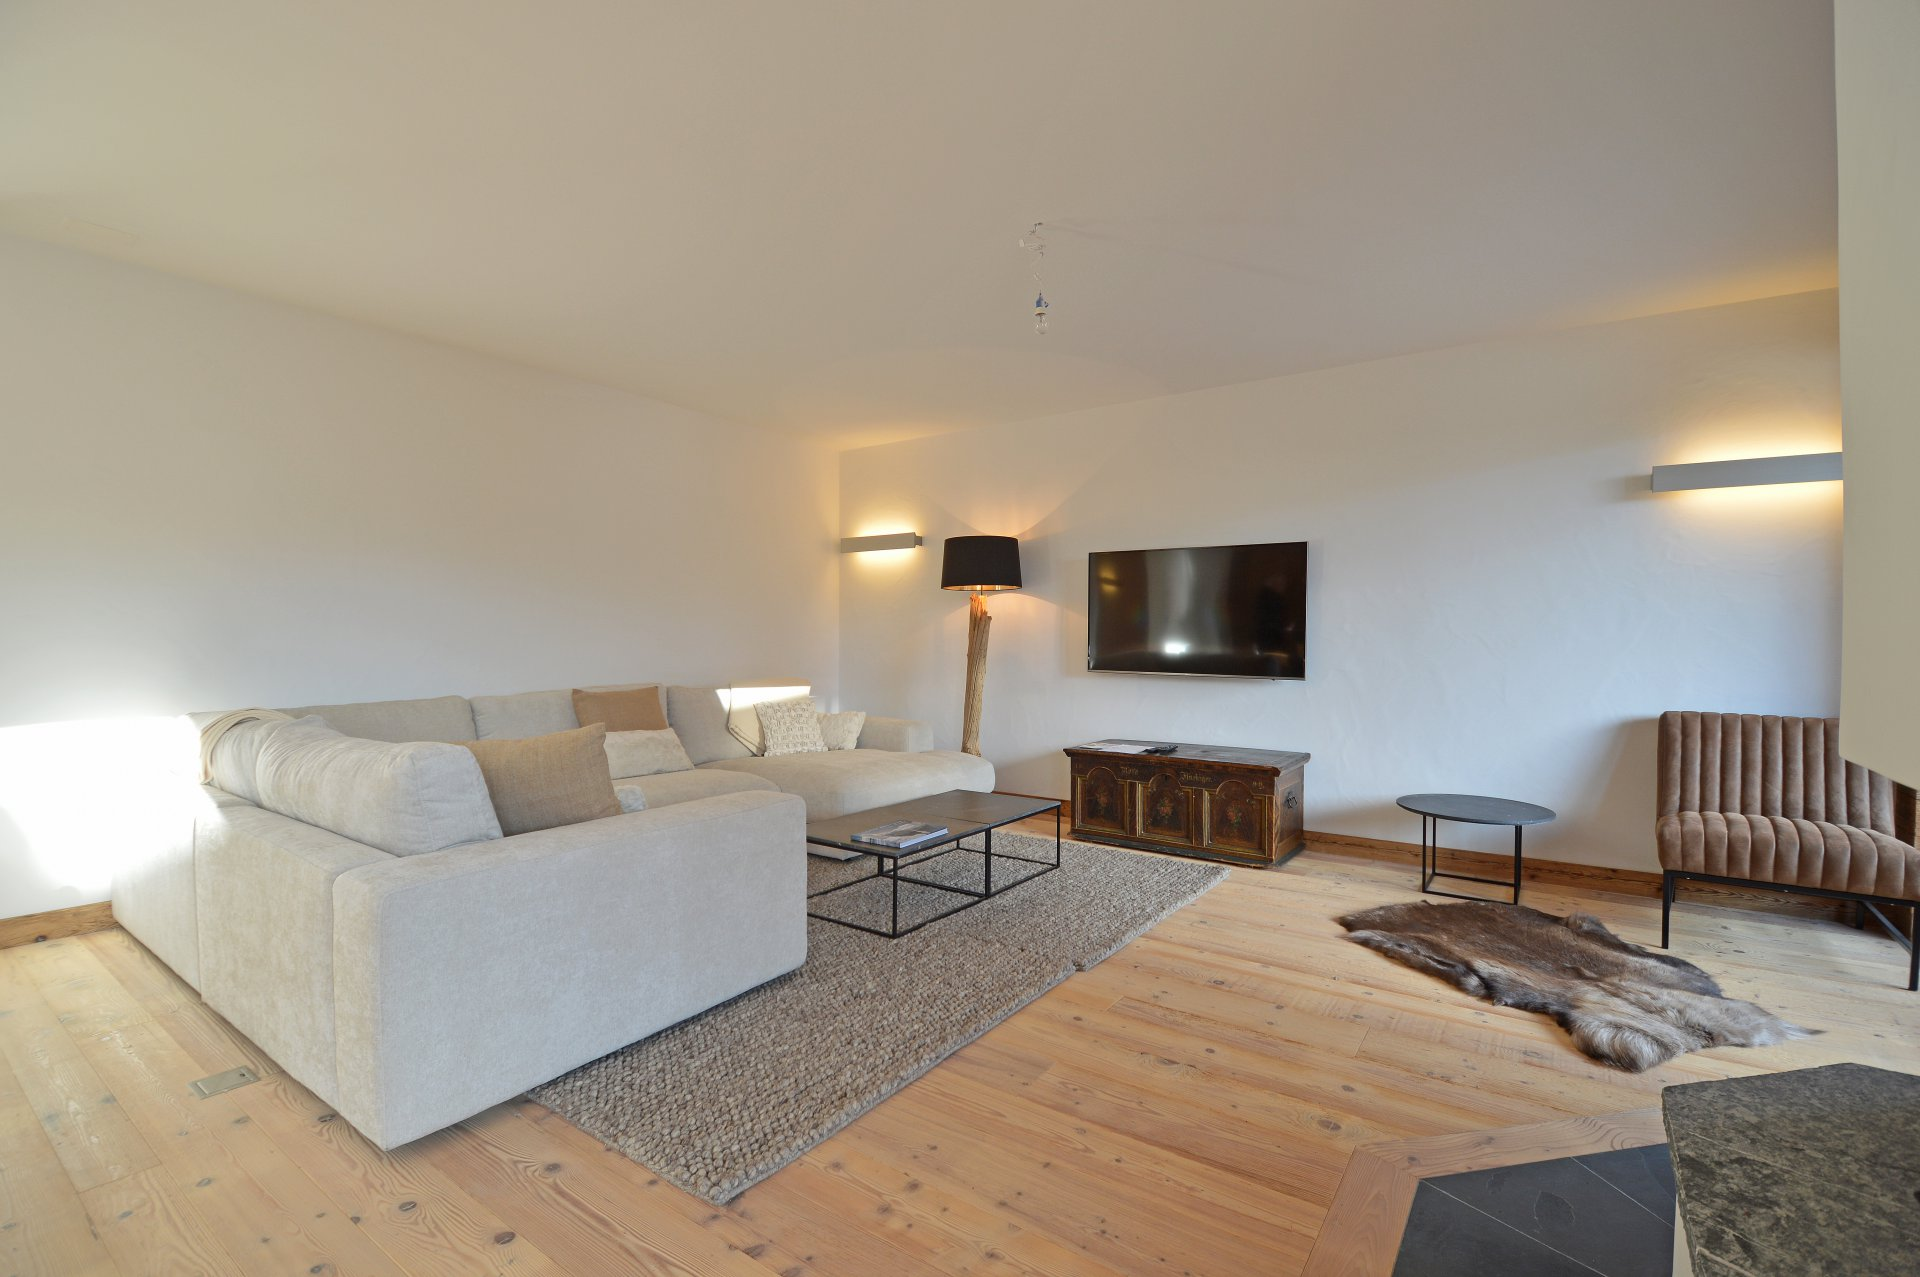 Photo of Brand new luxury residence in centre of Verbier - 217